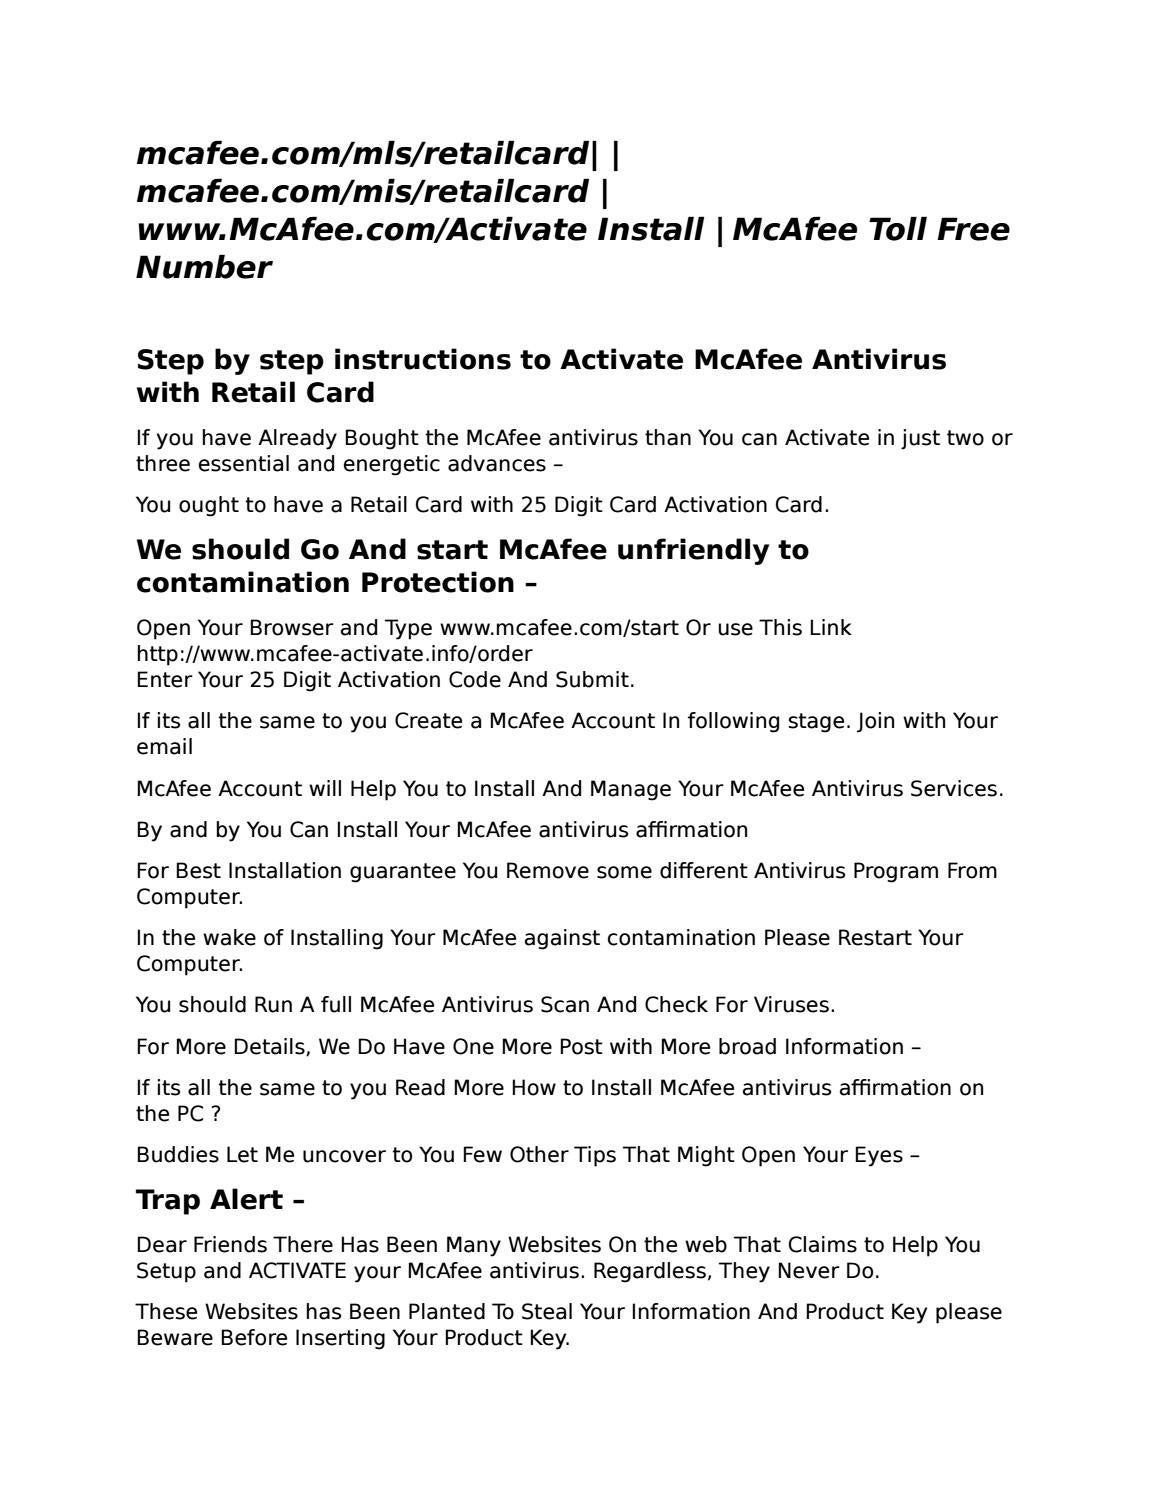 Activate website for McAfee MLS www mcafee com/mls